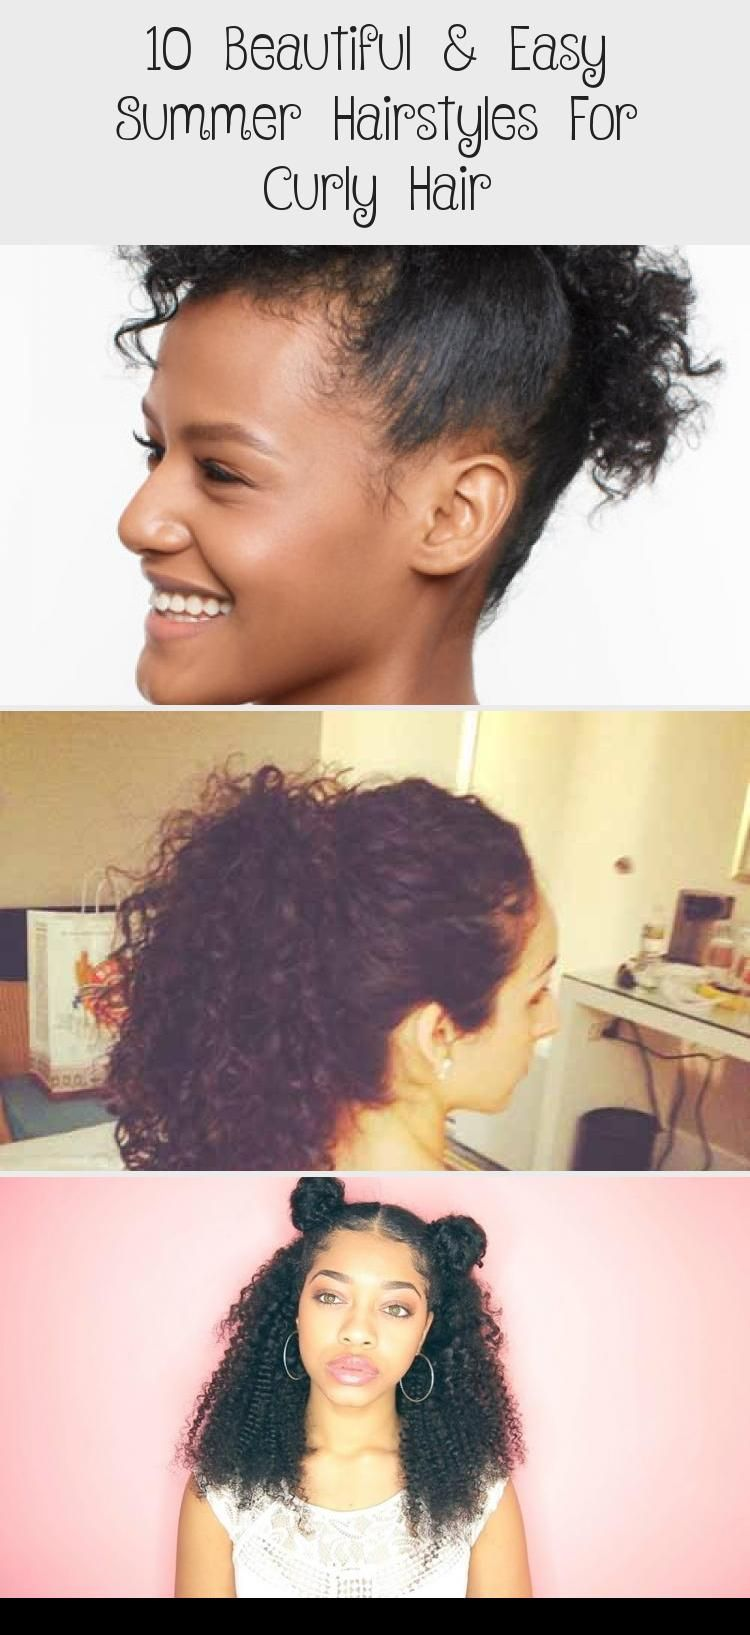 10 Beautiful Easy Summer Hairstyles For Curly Hair In 2020 Curly Hair Styles Summer Hairstyles Easy Summer Hairstyles